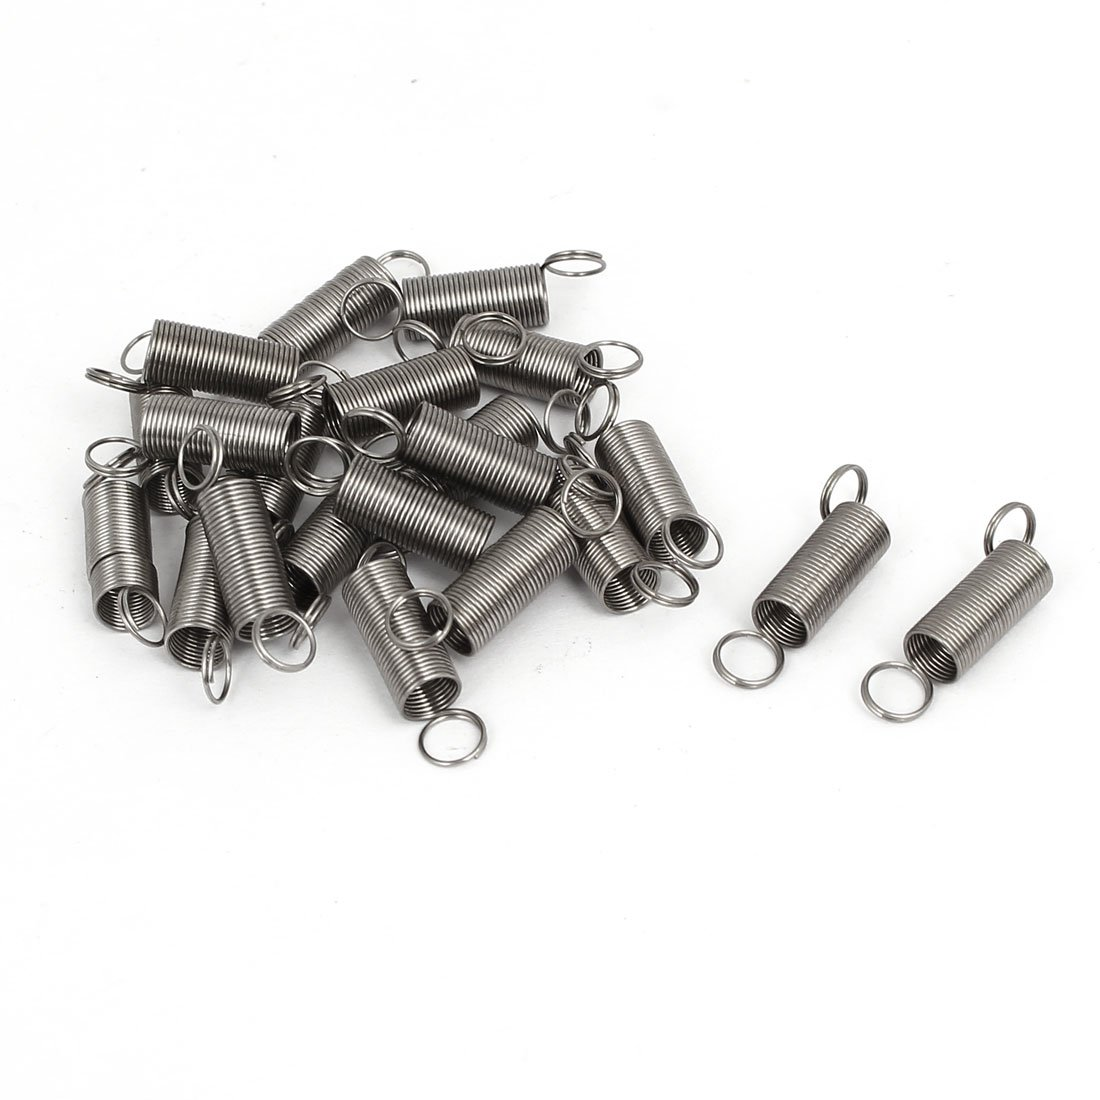 0.5mmx6mmx25mm 304 Stainless Steel Dual Rings Tension Springs Silver Gray 21pcs